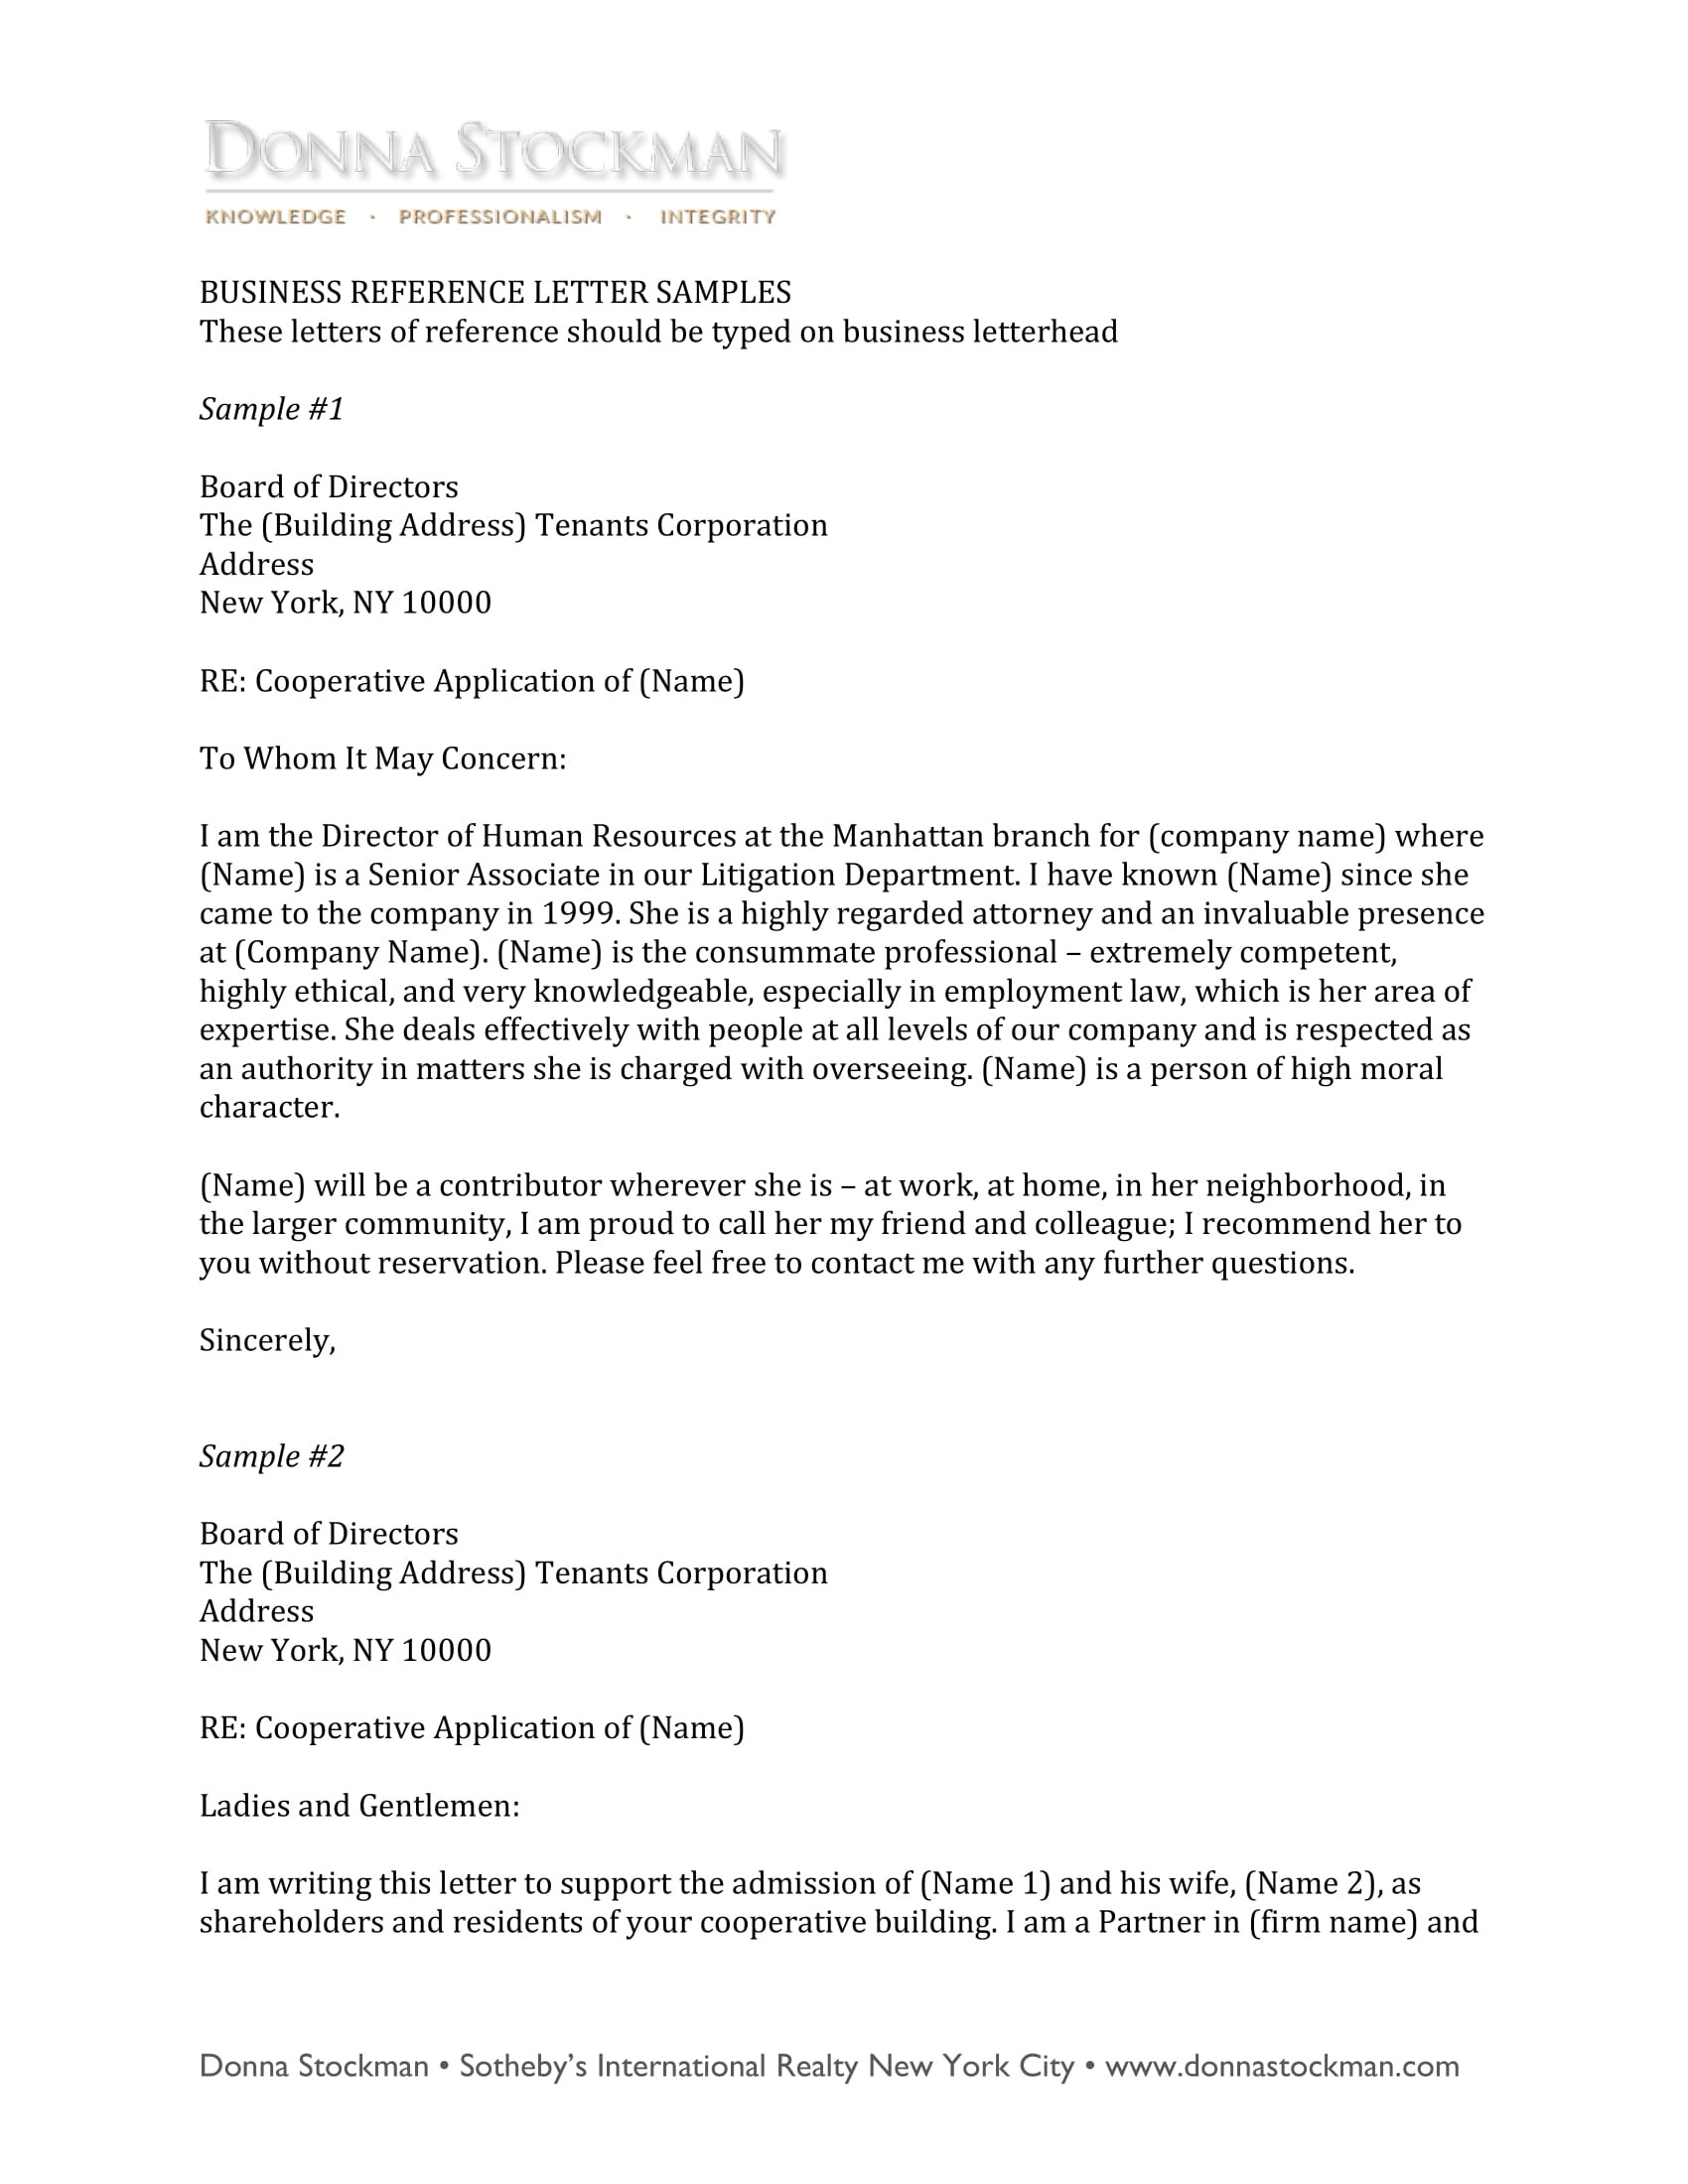 Recommendation Letter Templates | 10 Business Reference Letter Examples Pdf